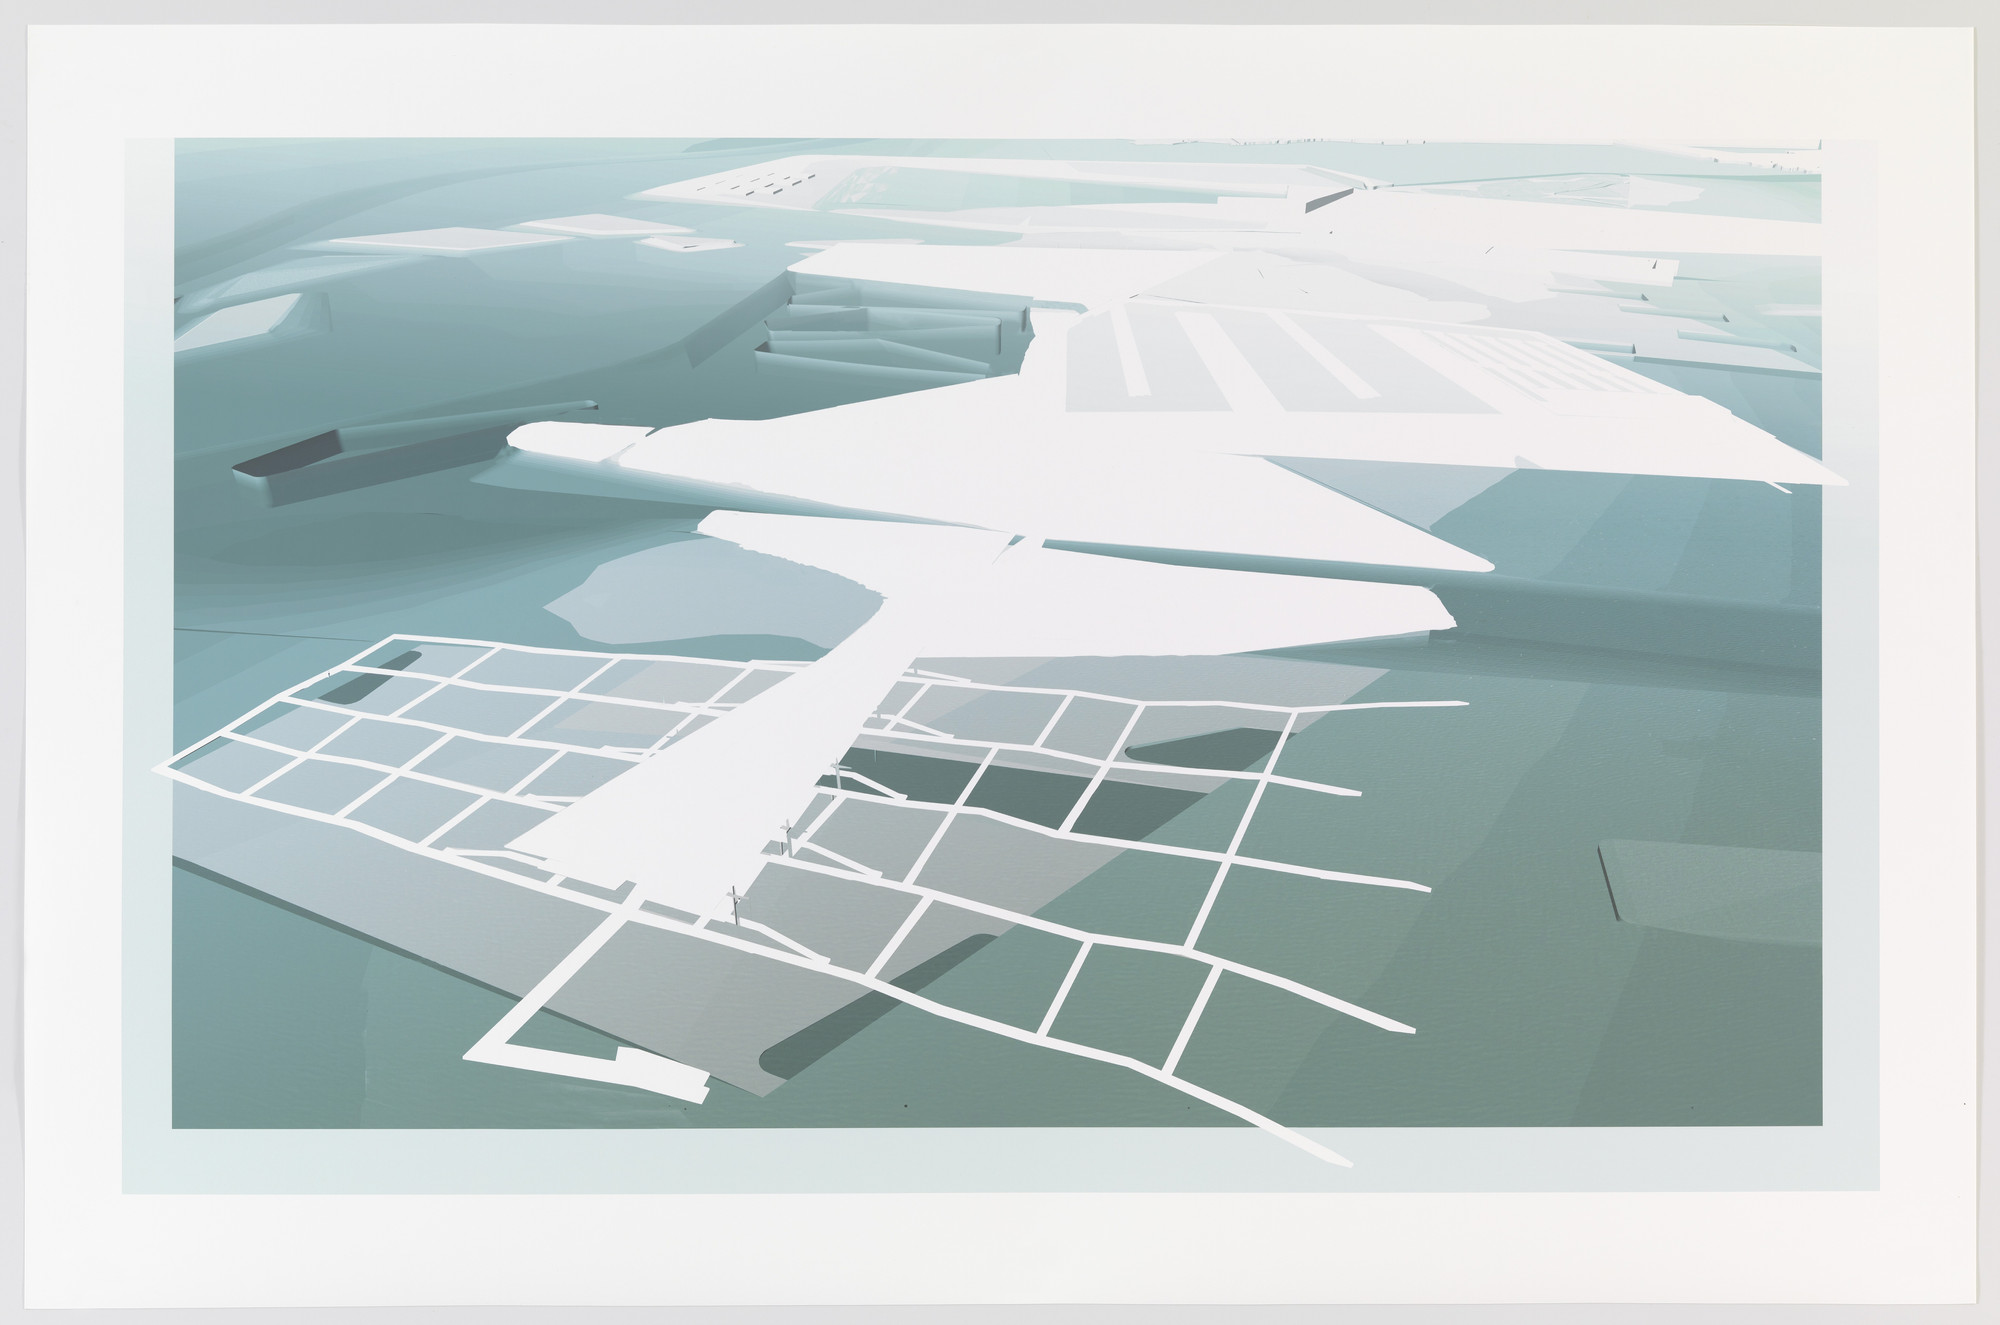 Paul Lewis, Marc Tsurumaki, David J. Lewis. Aquaculture Research and Development Center, Water Proving Ground Project, Liberty State Park, NJ (Aerial perspective). 2010